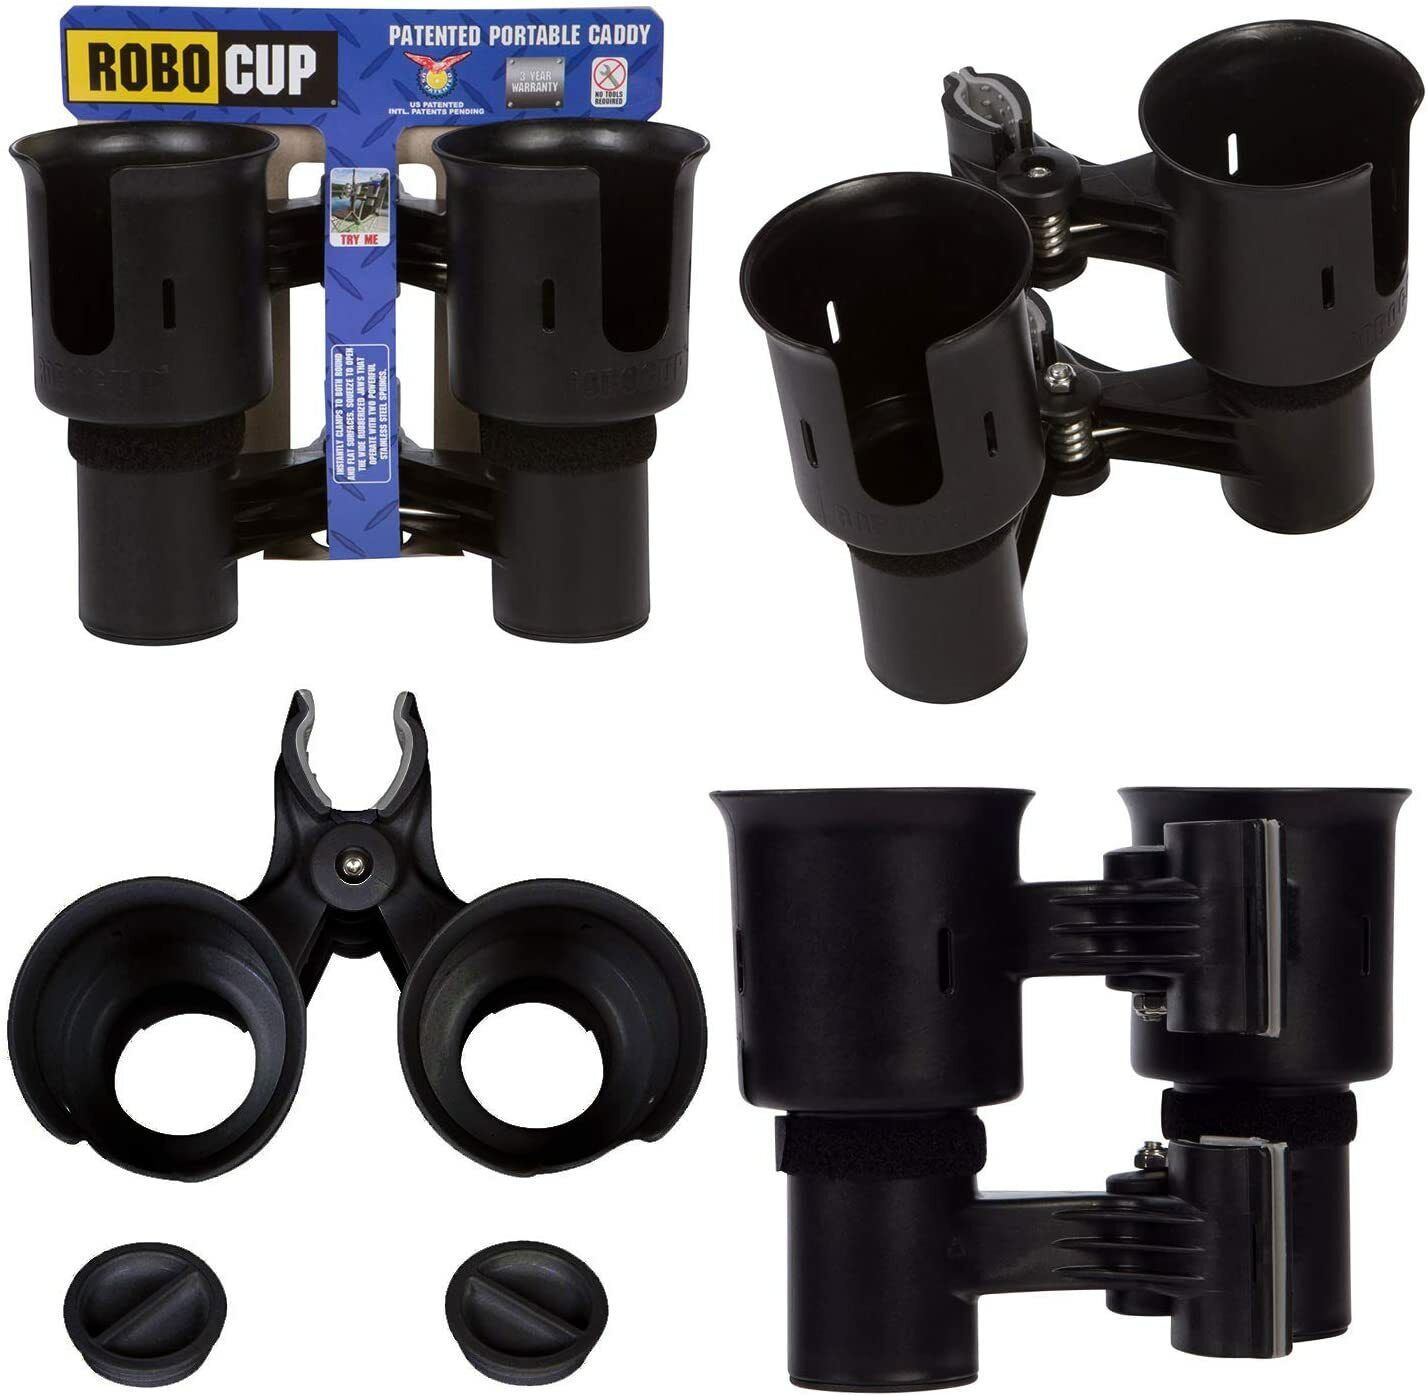 ROBOCUP 12 Colors, Best Cup Holder for Drinks, Fishing Rod/P